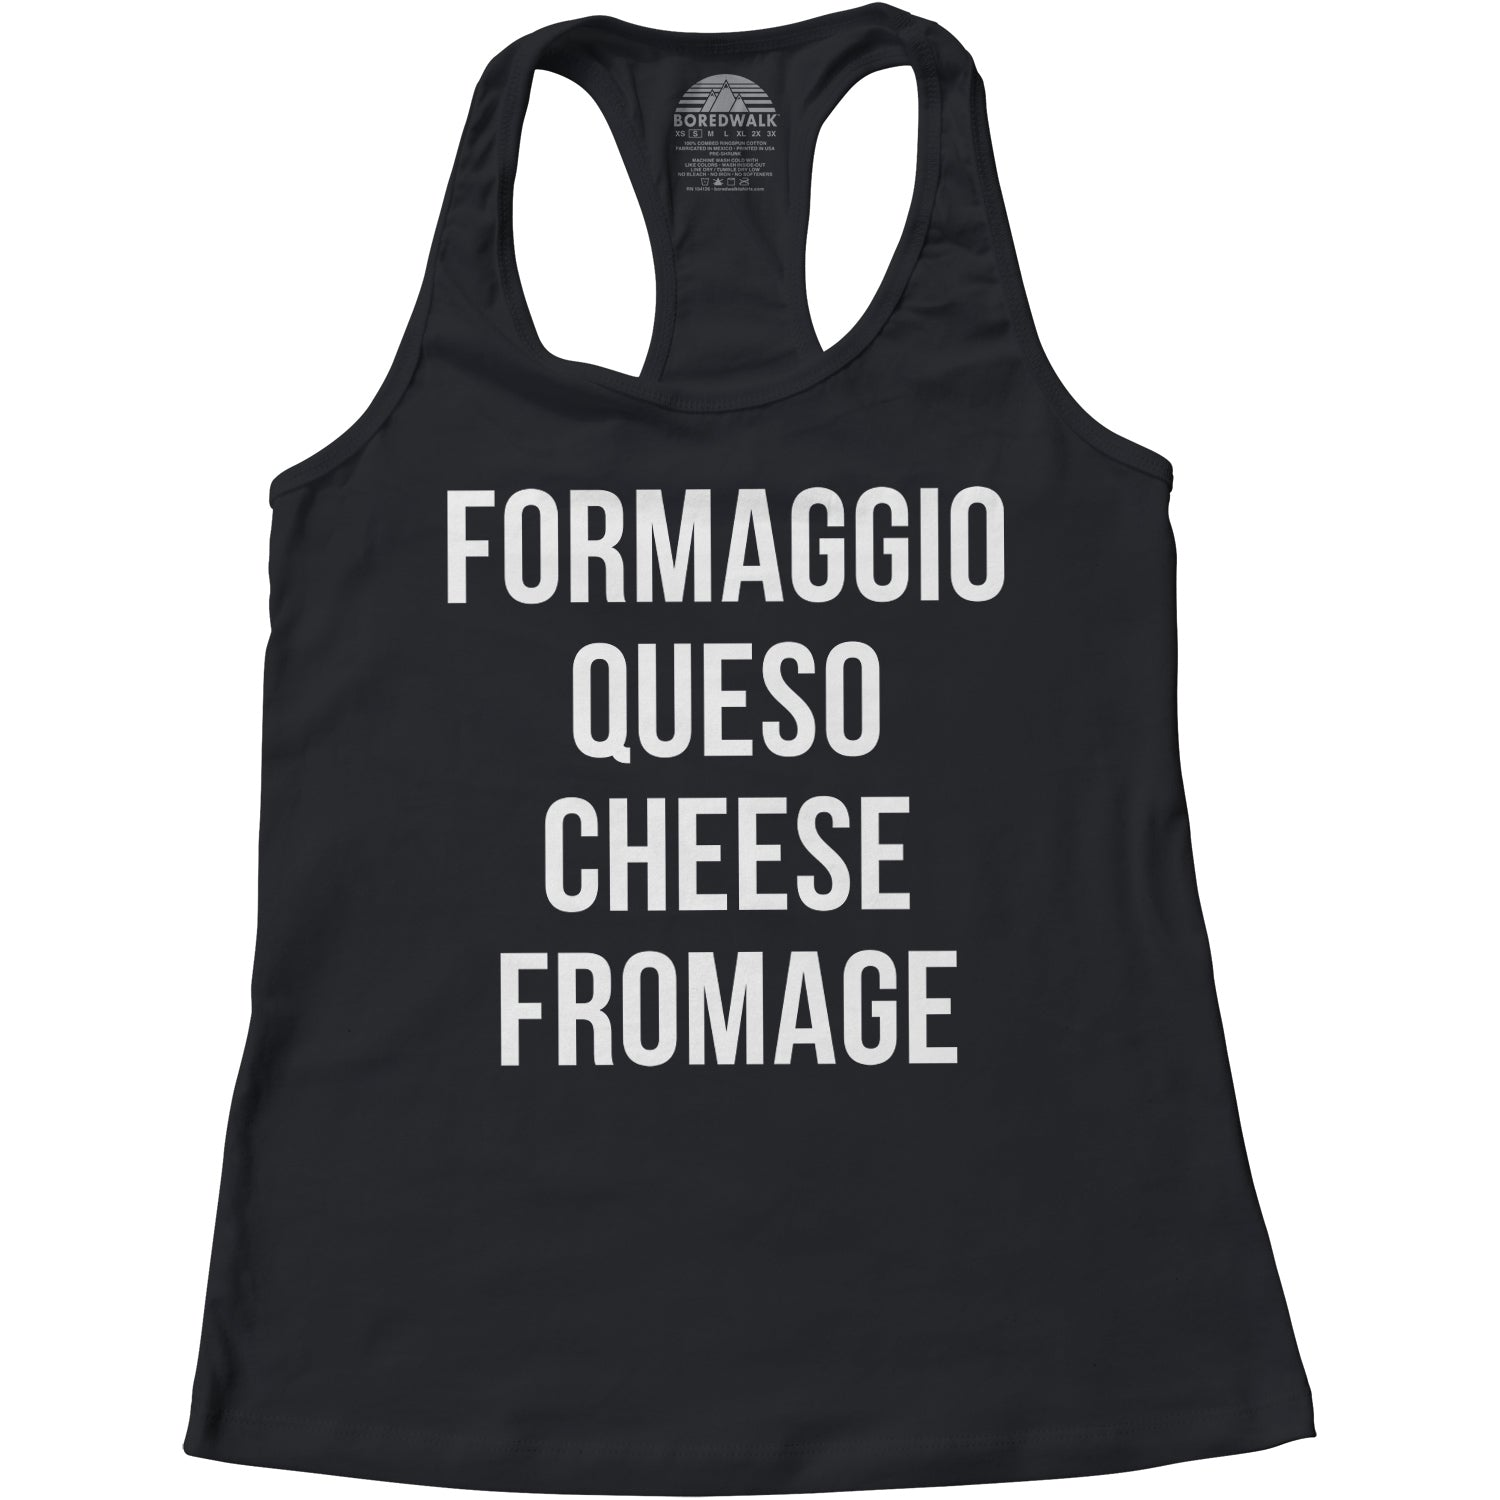 Women's Formaggio Queso Cheese Fromage Racerback Tank Top